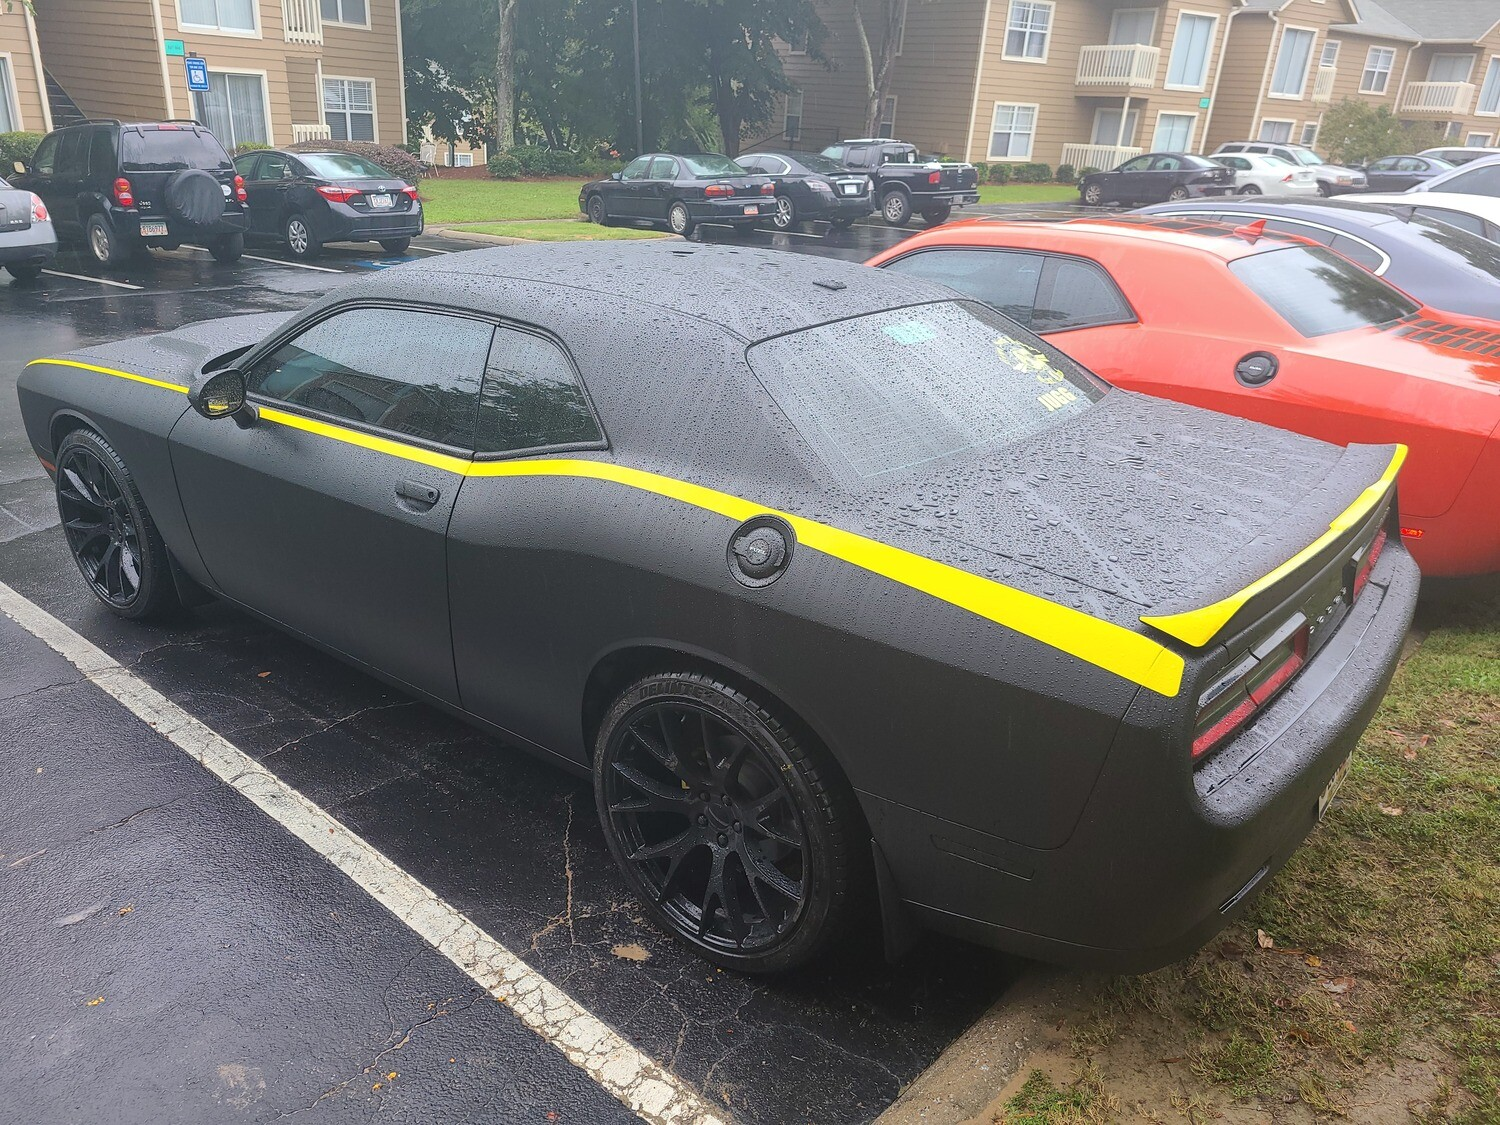 2015 - Up Dodge Challenger Rear Spoiler Top Surface Decal Kit